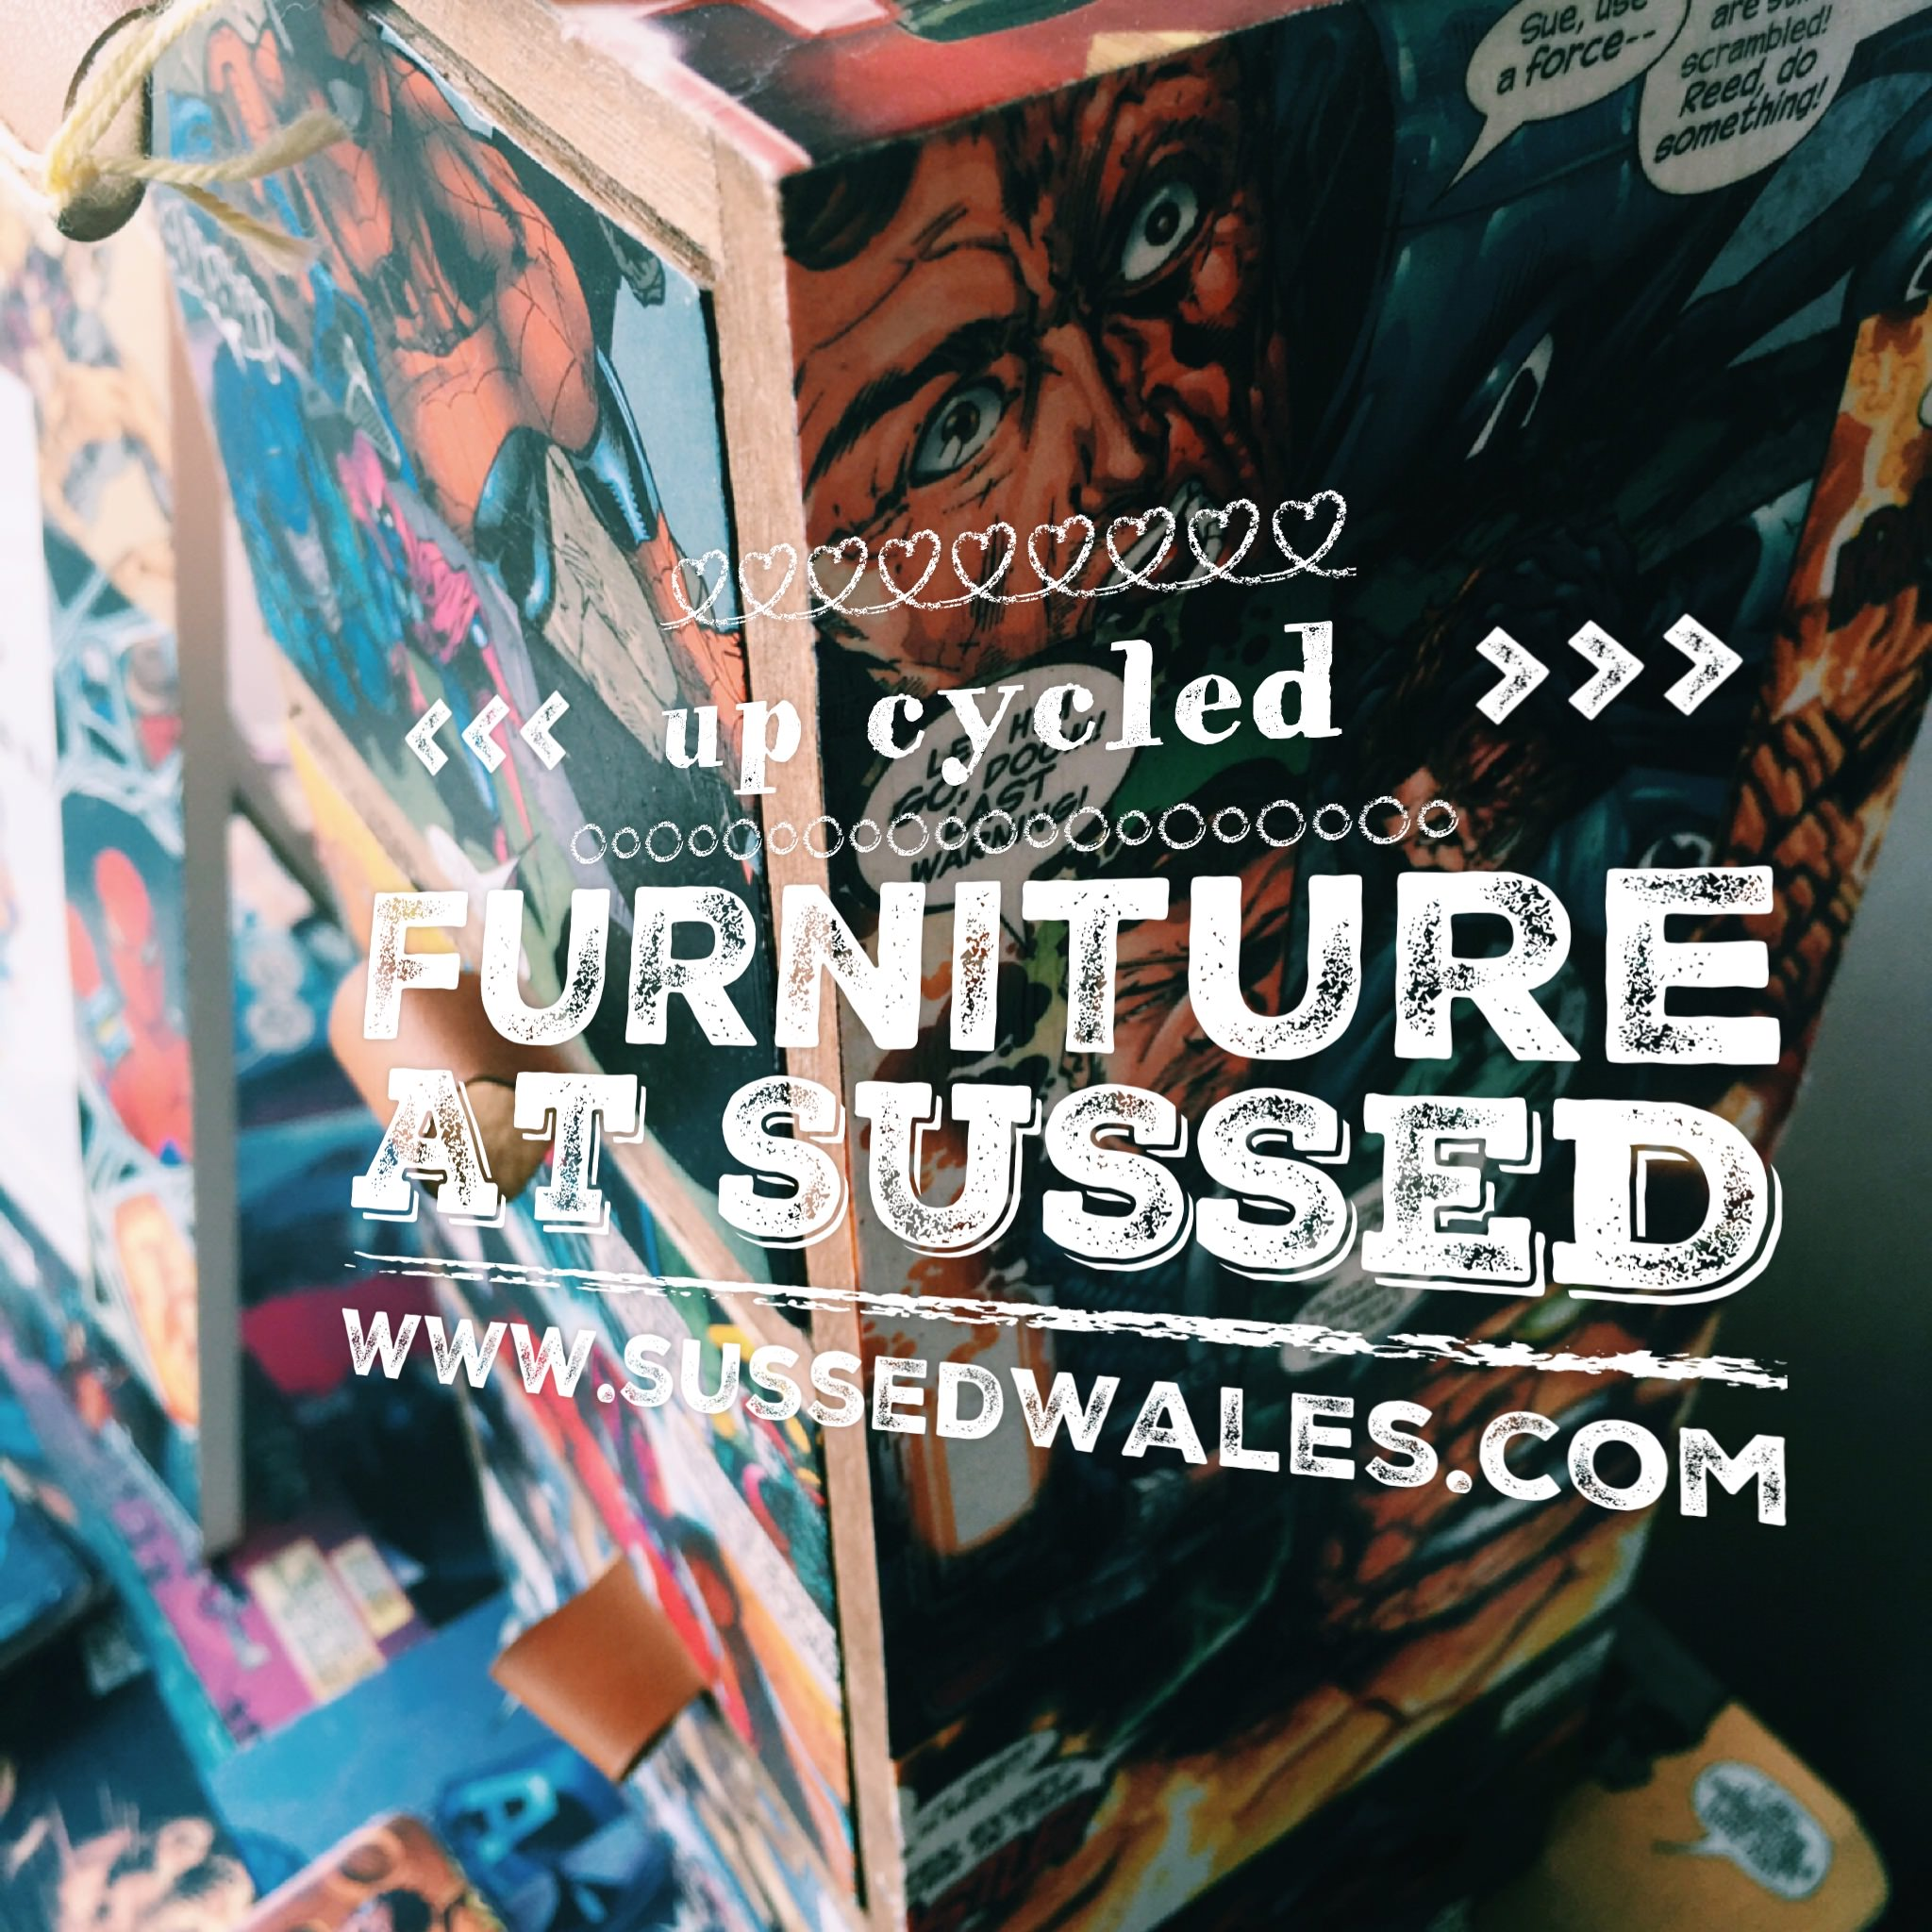 upcycled furniture.jpg